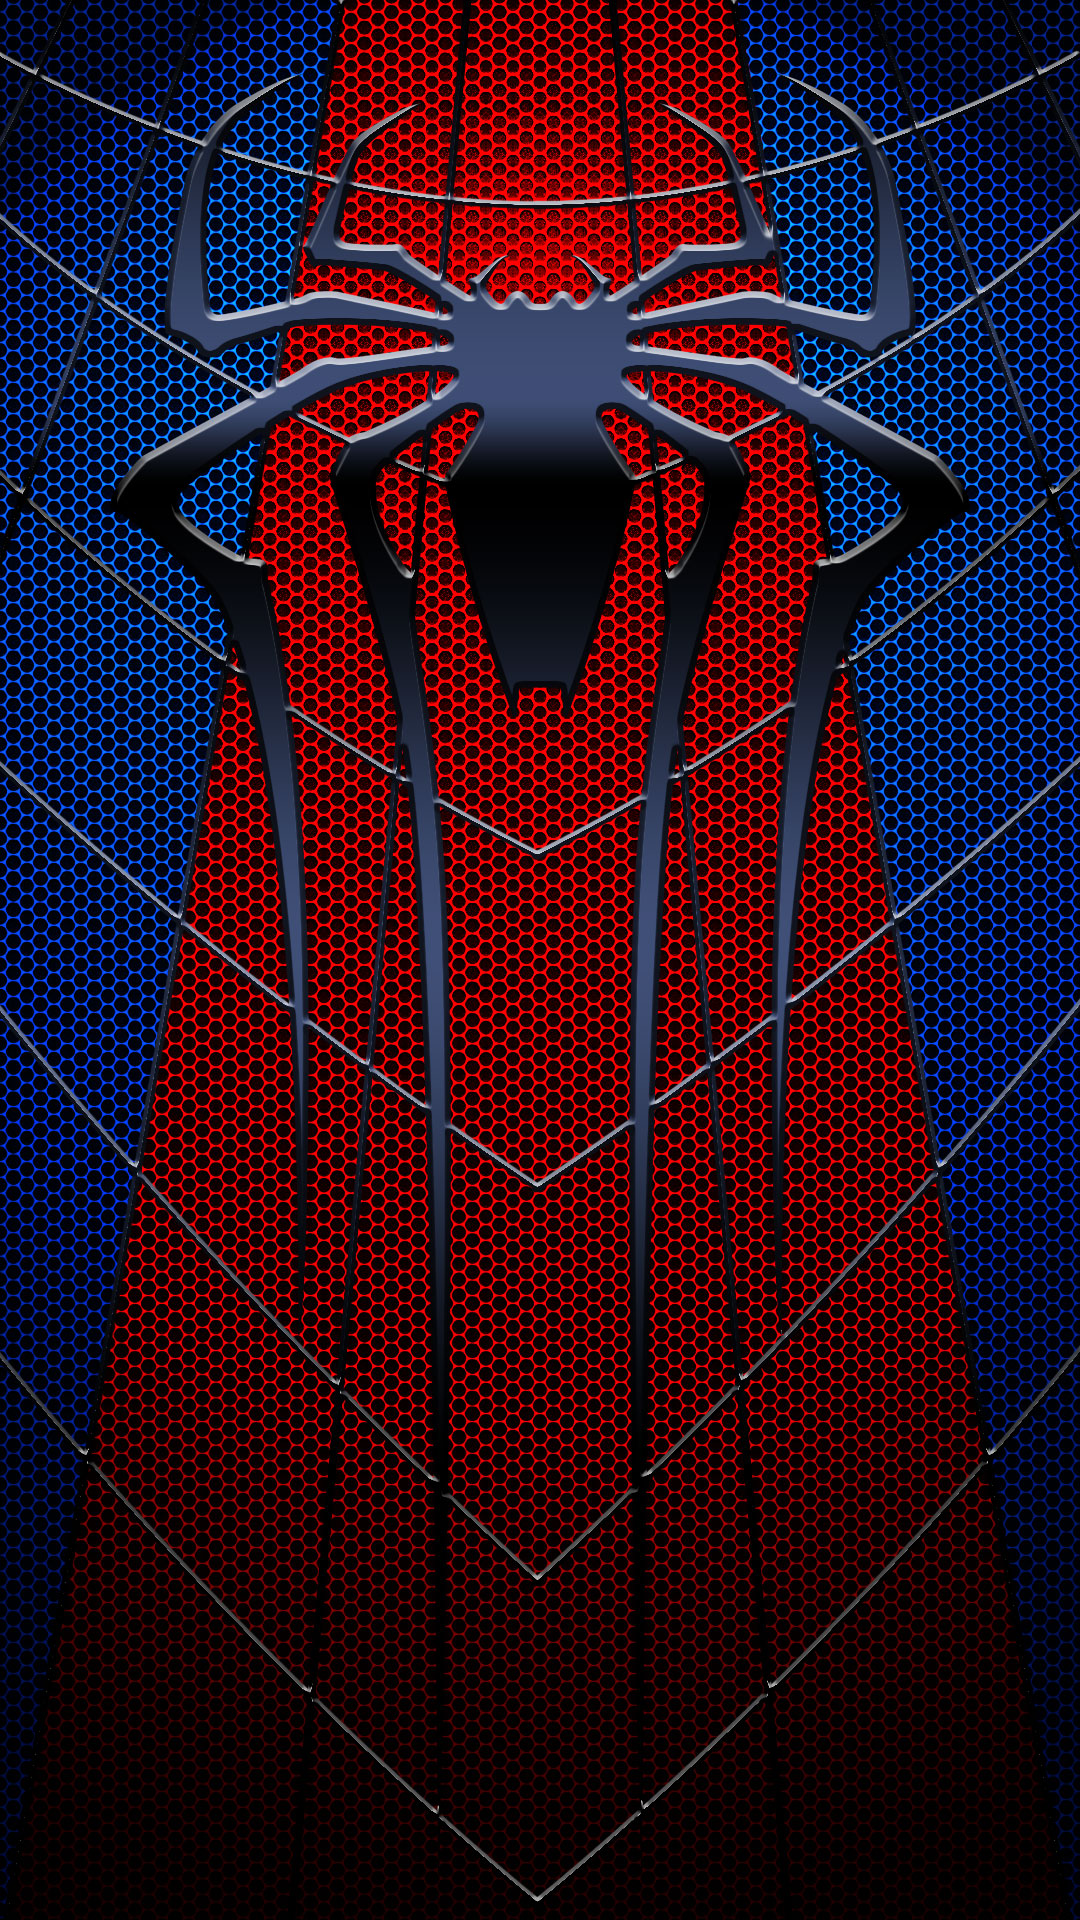 Spiderman-phone-wallpaper by Balsavor on DeviantArt